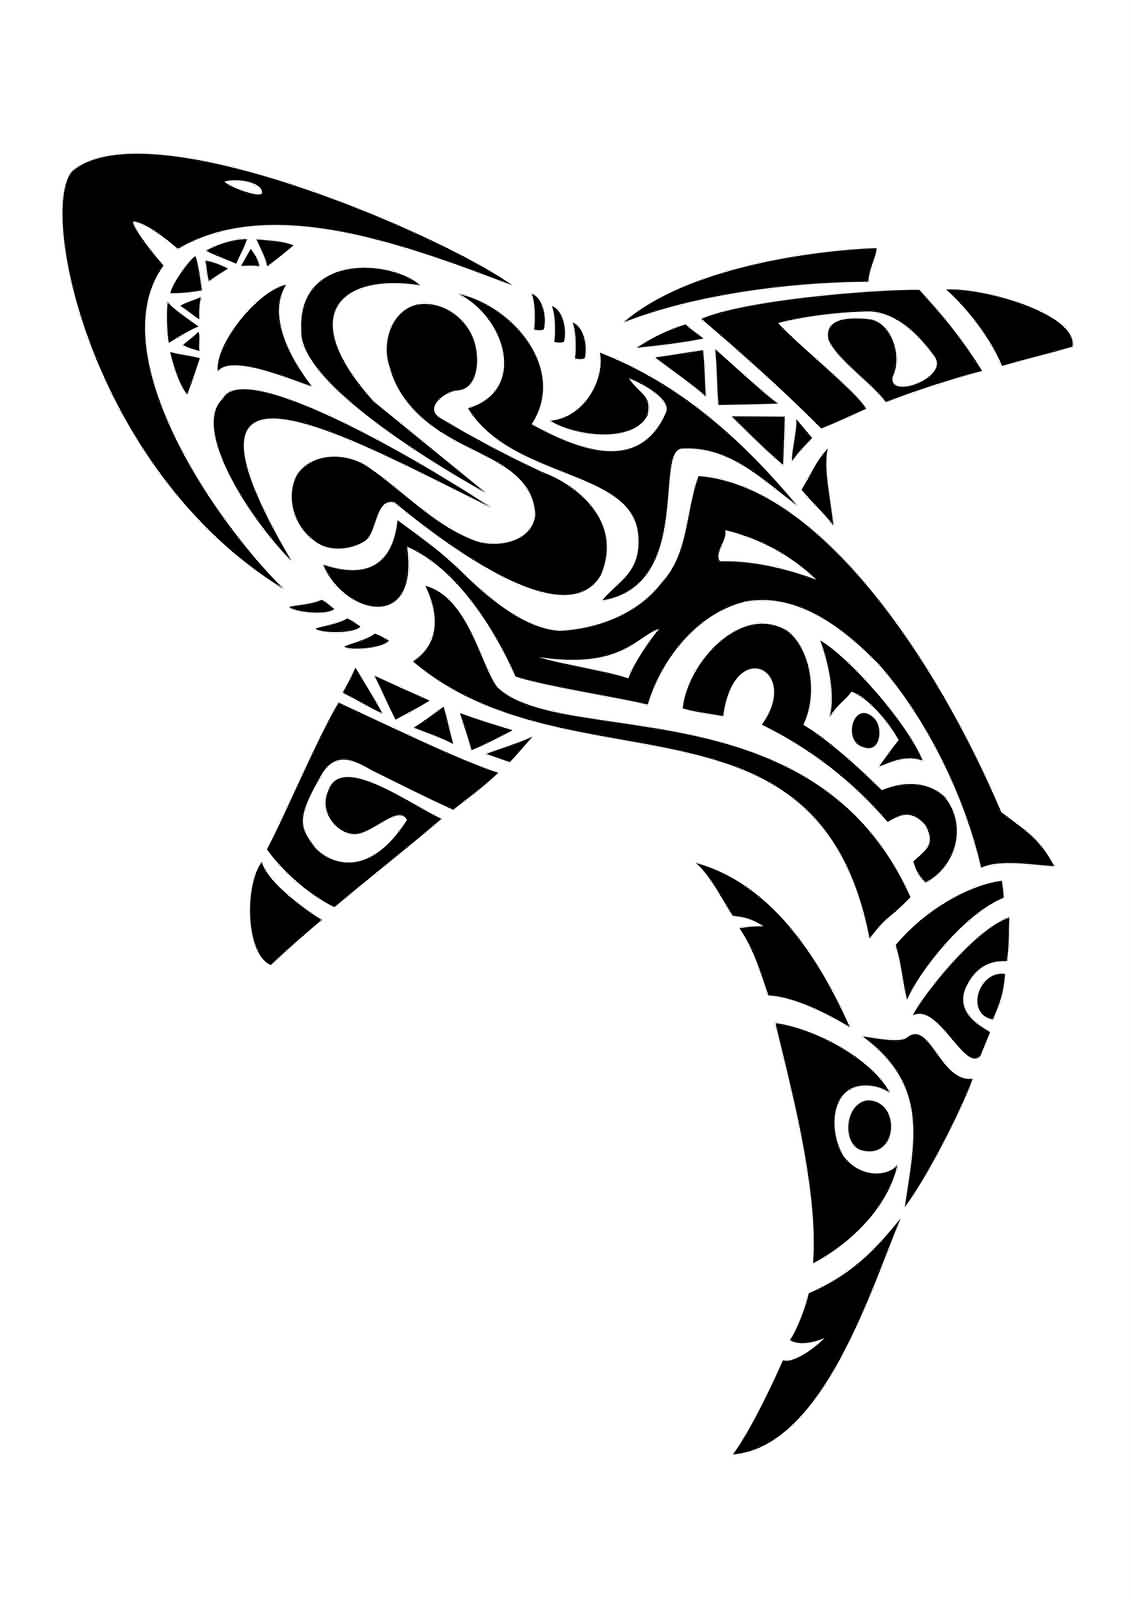 The Latest Maori Shark Tattoo Design